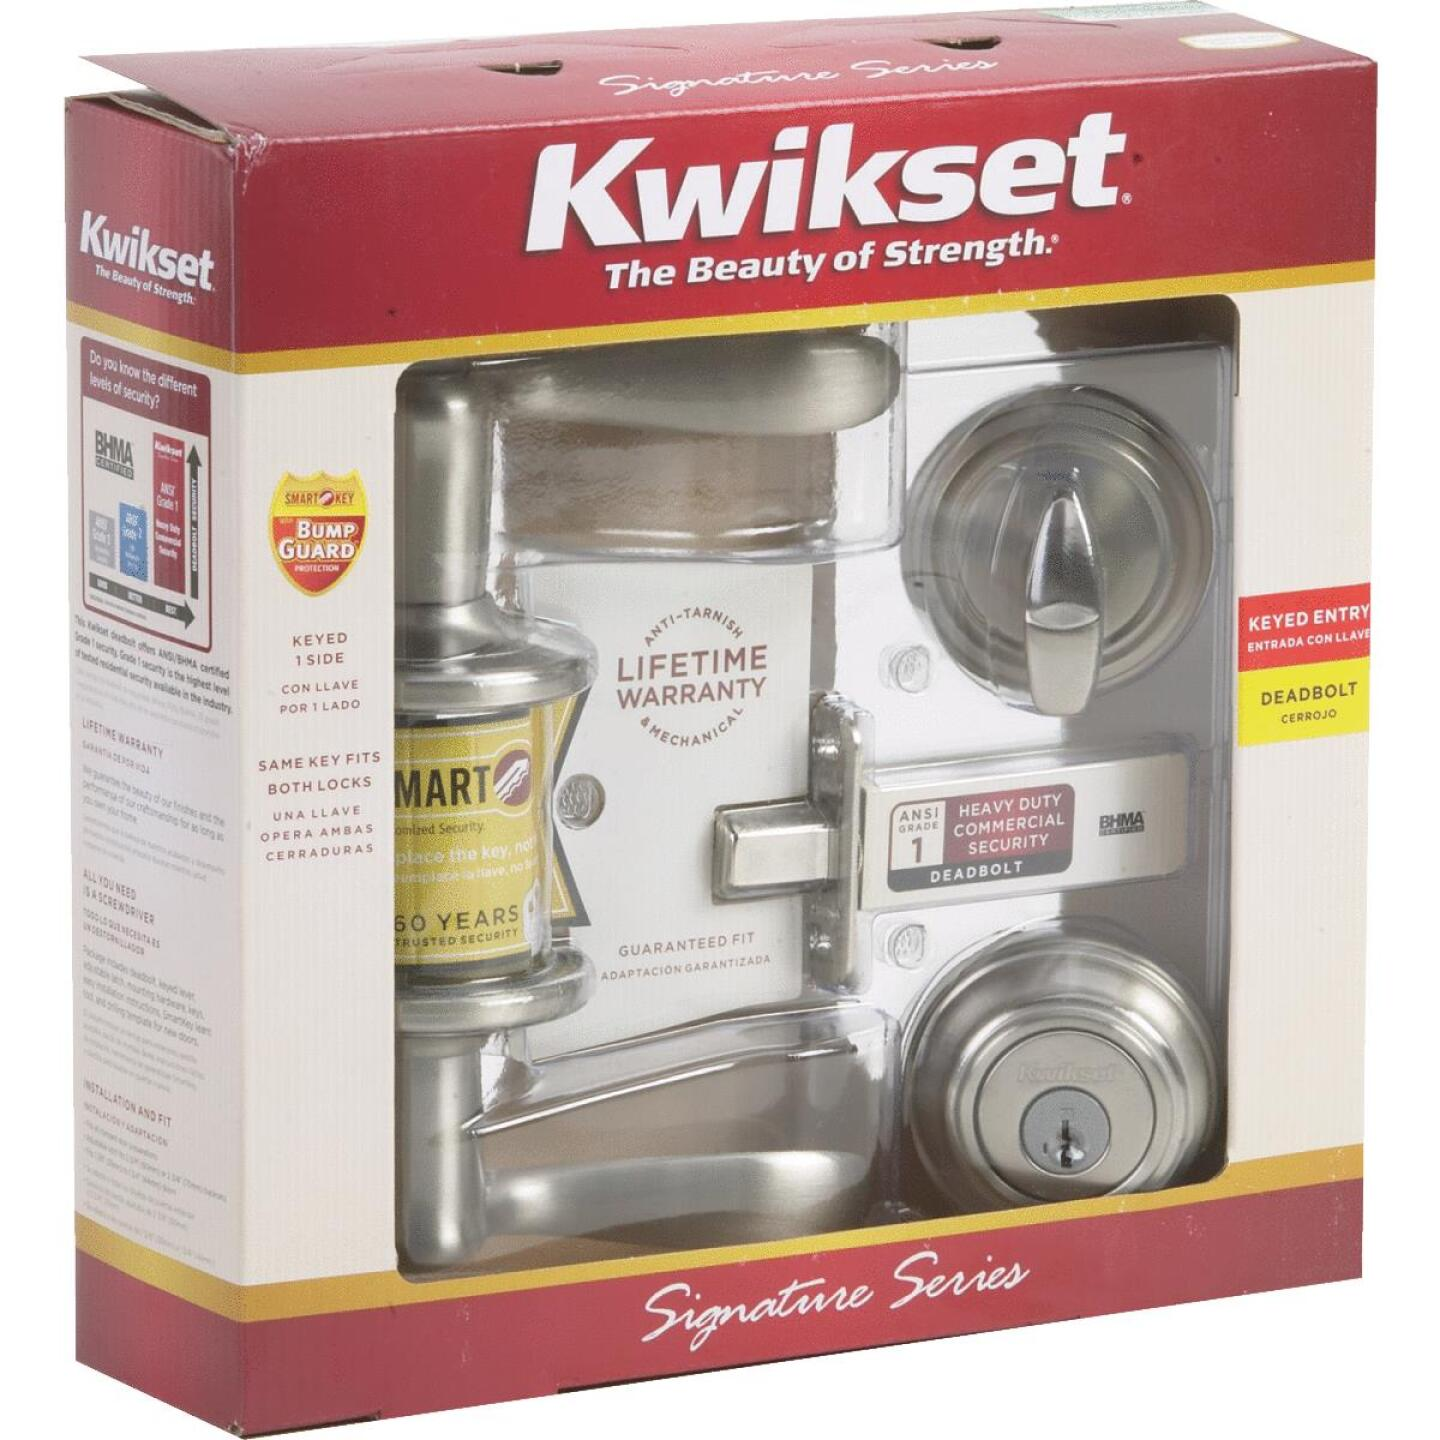 Kwikset Signature Series Satin Nickel Deadbolt and Lever Combo with Smartkey Image 2